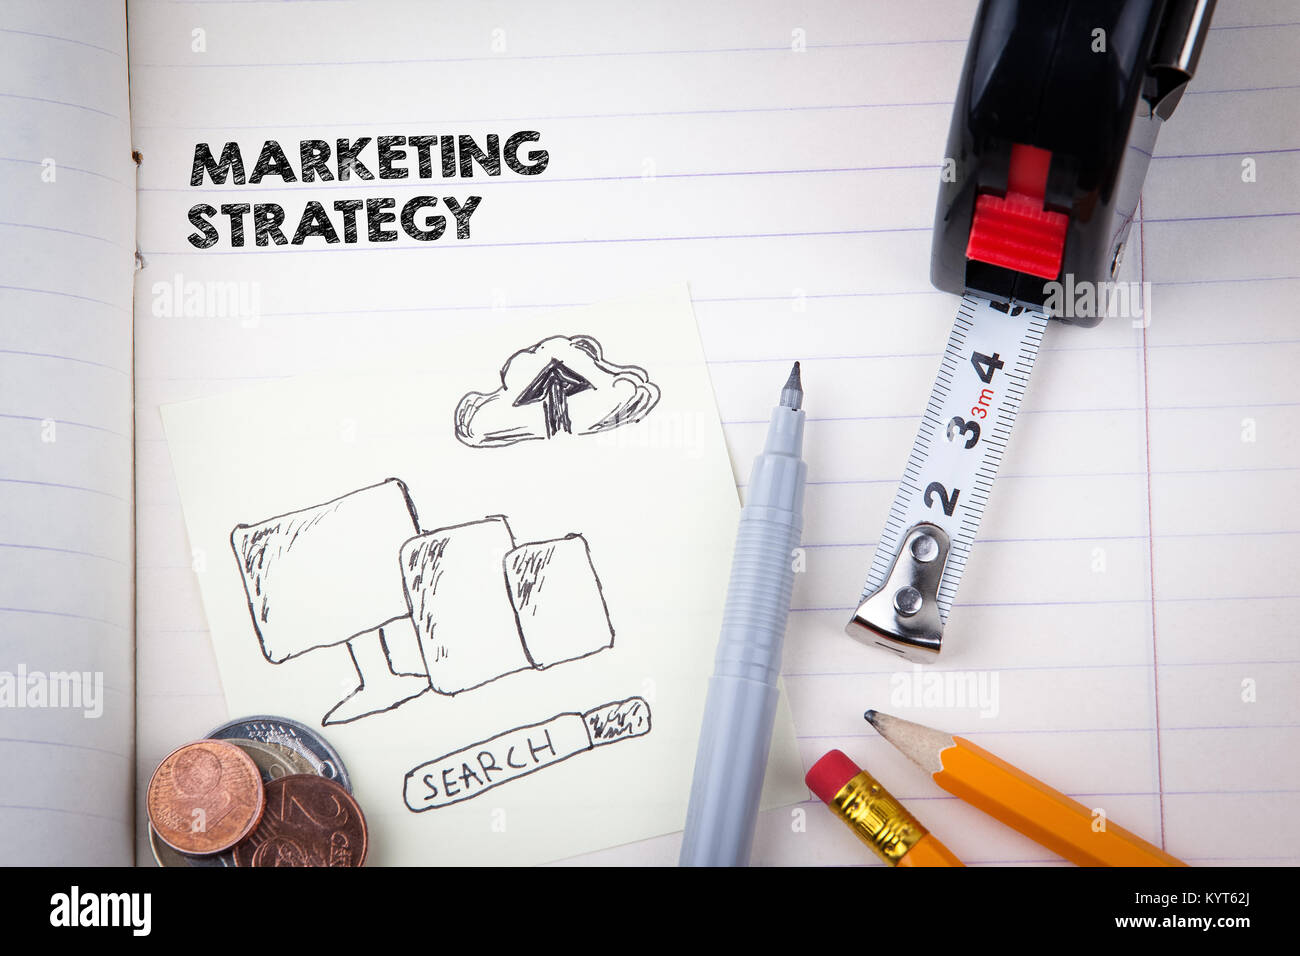 Marketing Strategy concept. social media, digital advertising and internet business - Stock Image